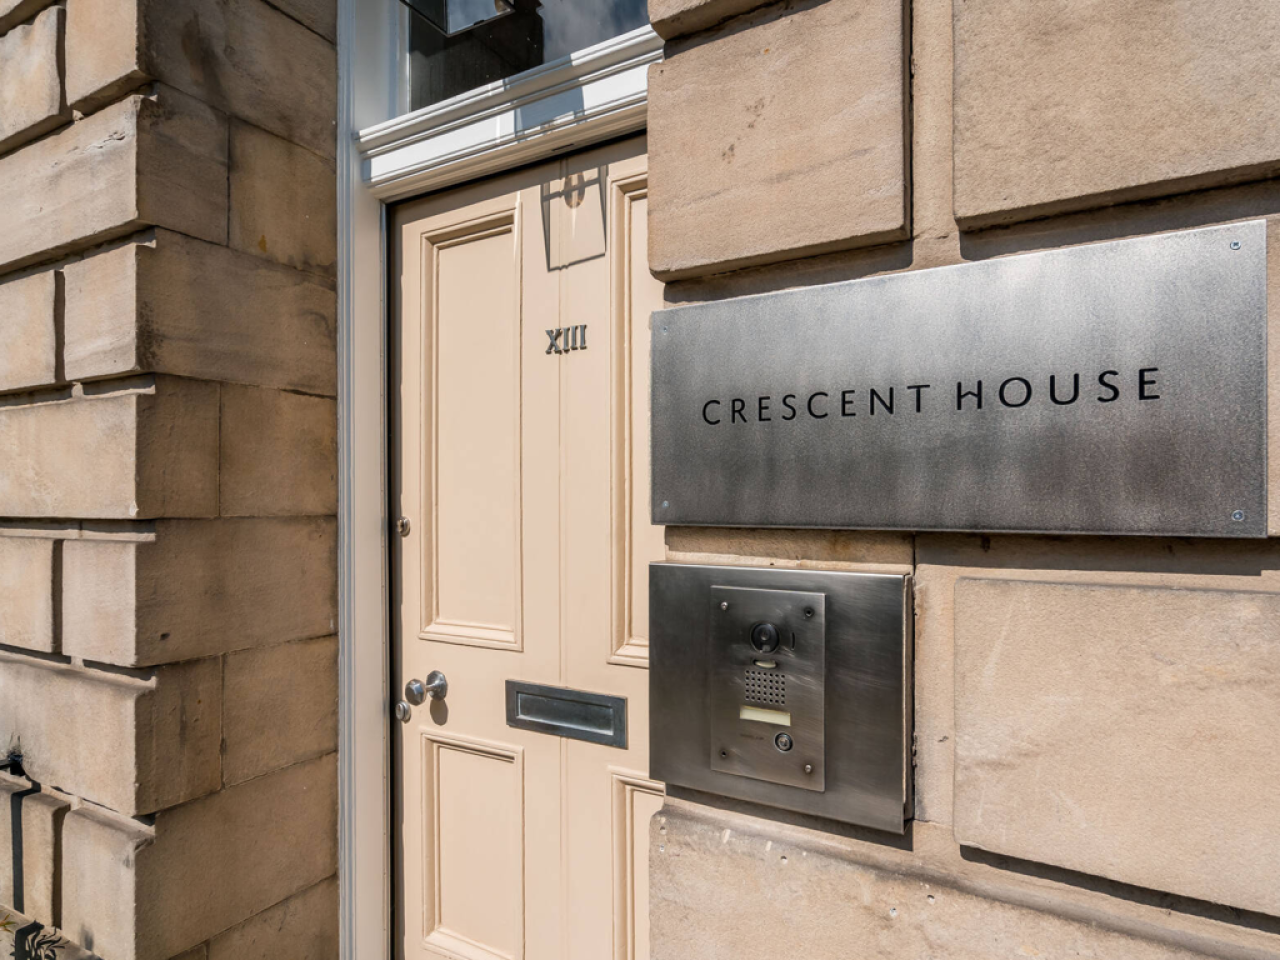 Welcome to Crescent House in Edinburgh's New Town, Scotland